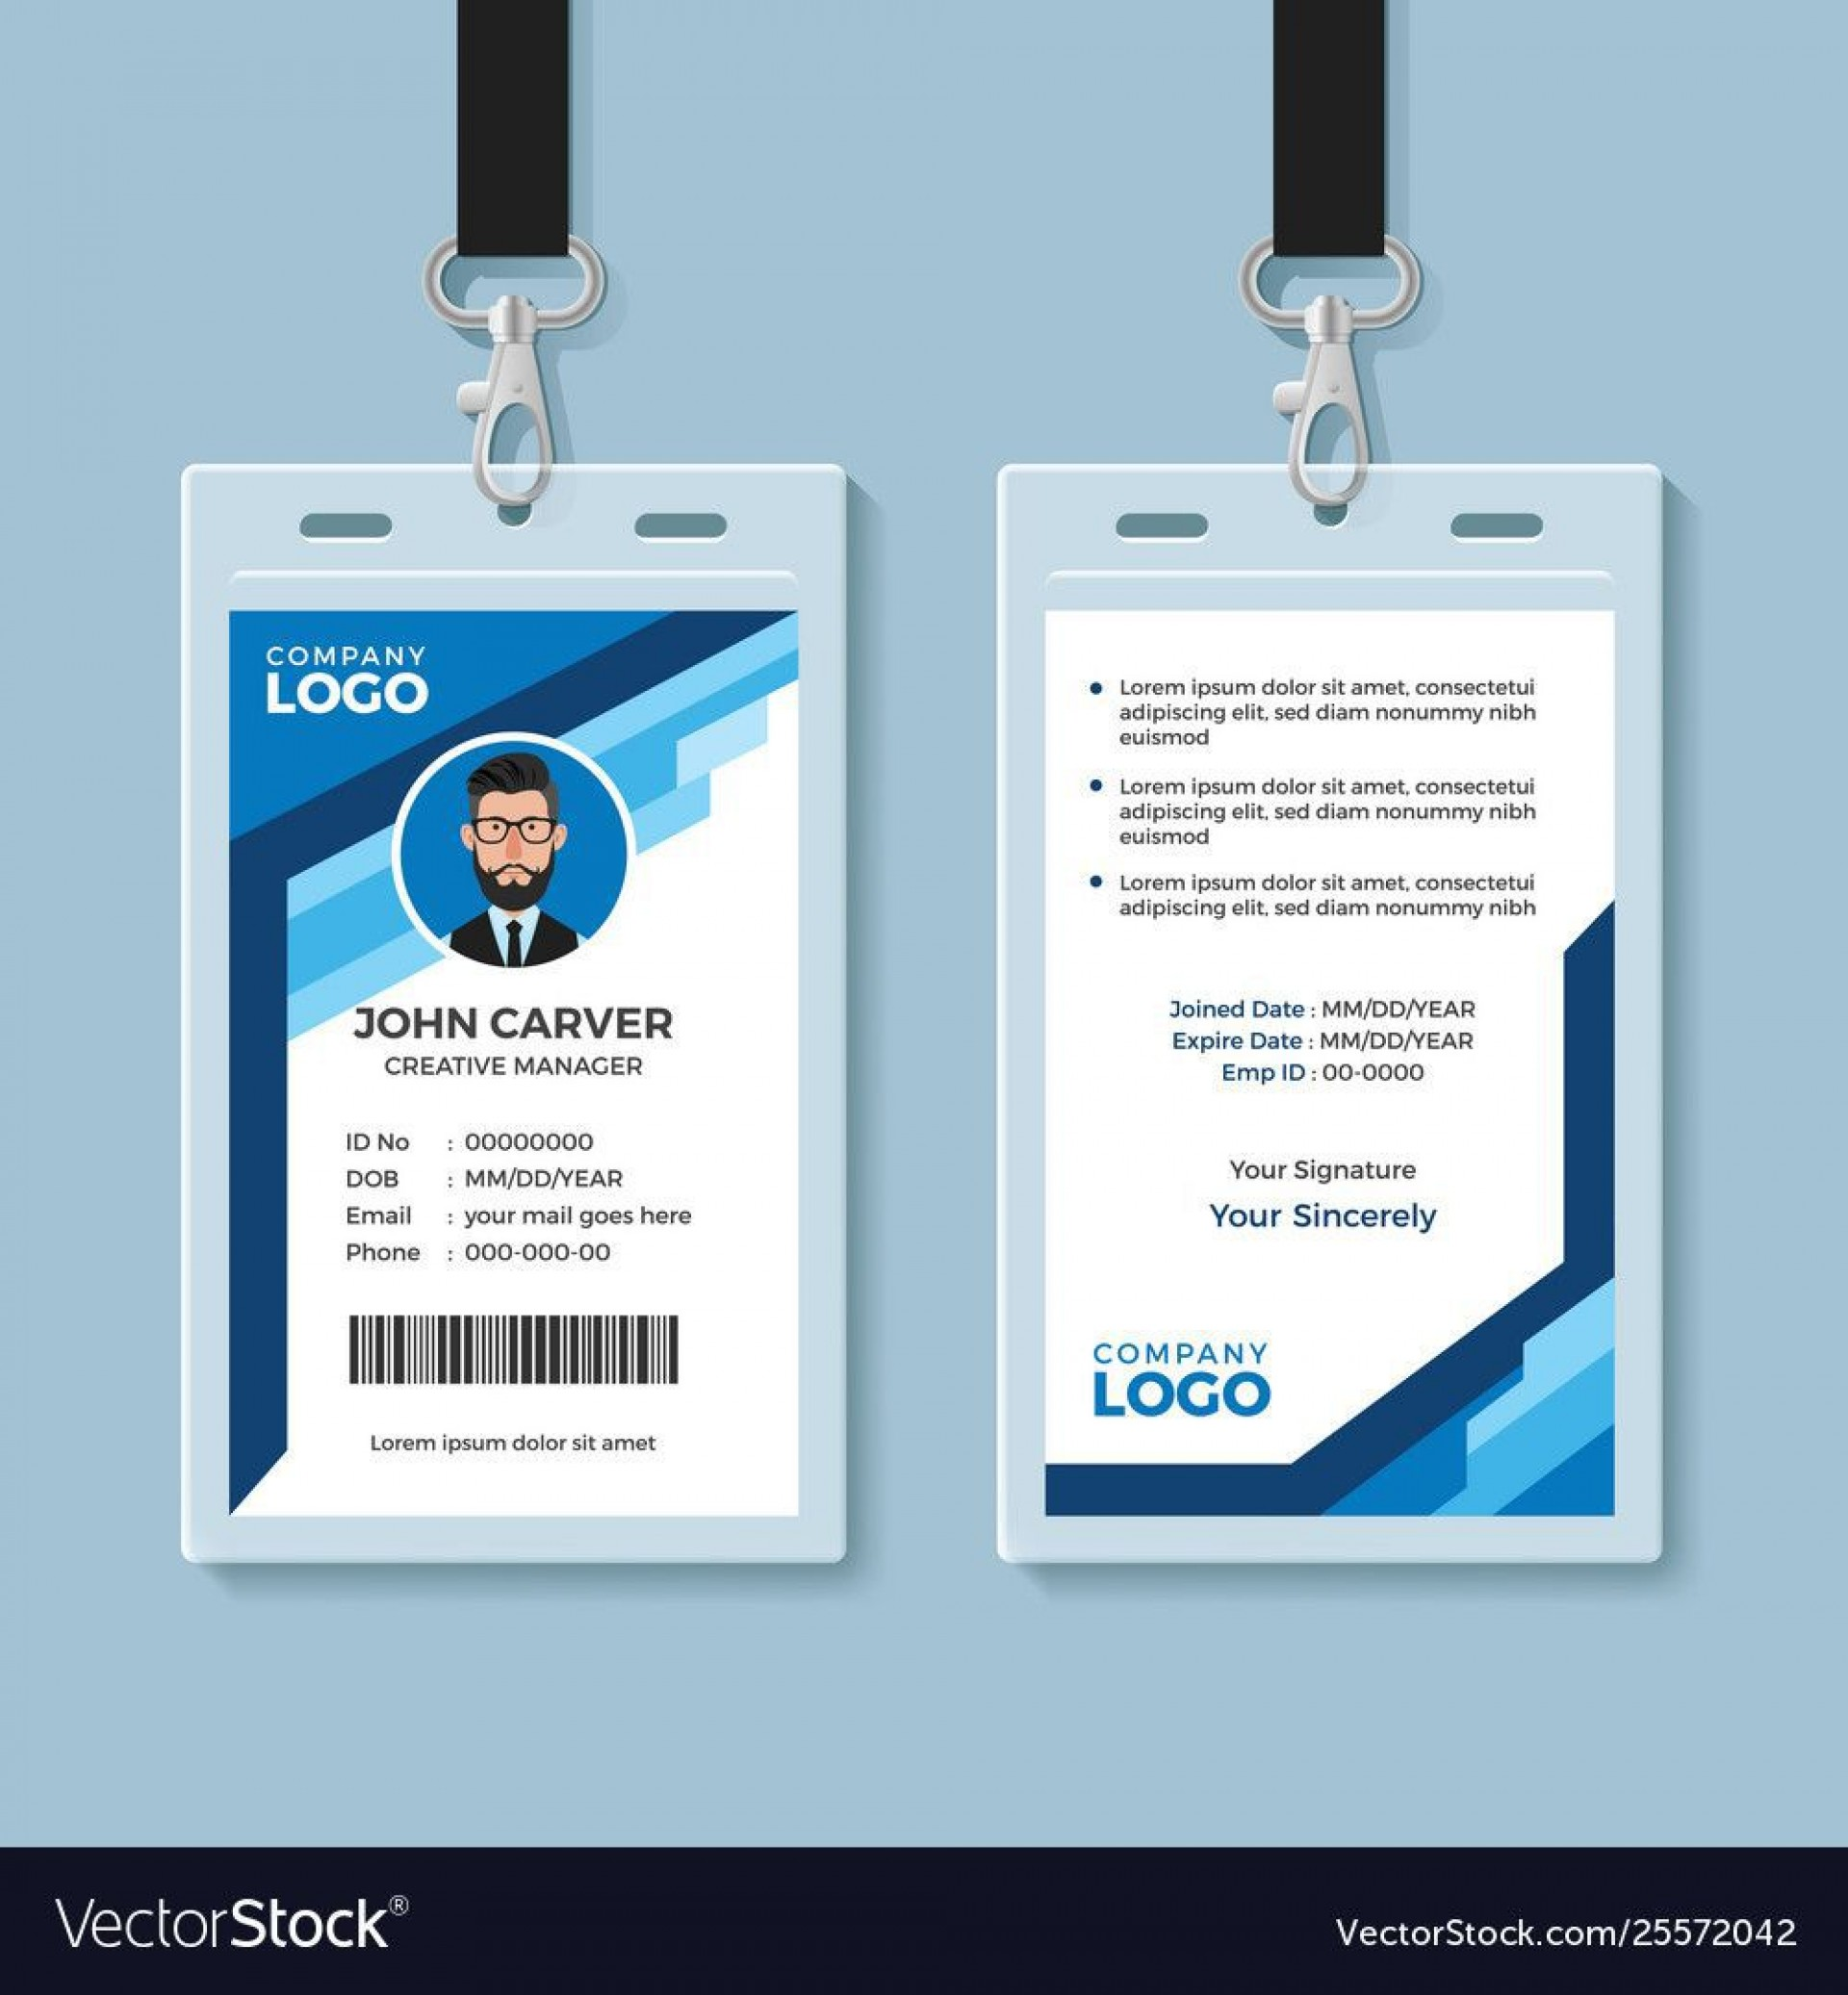 008 Wonderful Employee Id Card Template Picture  Free Download Psd Word1920